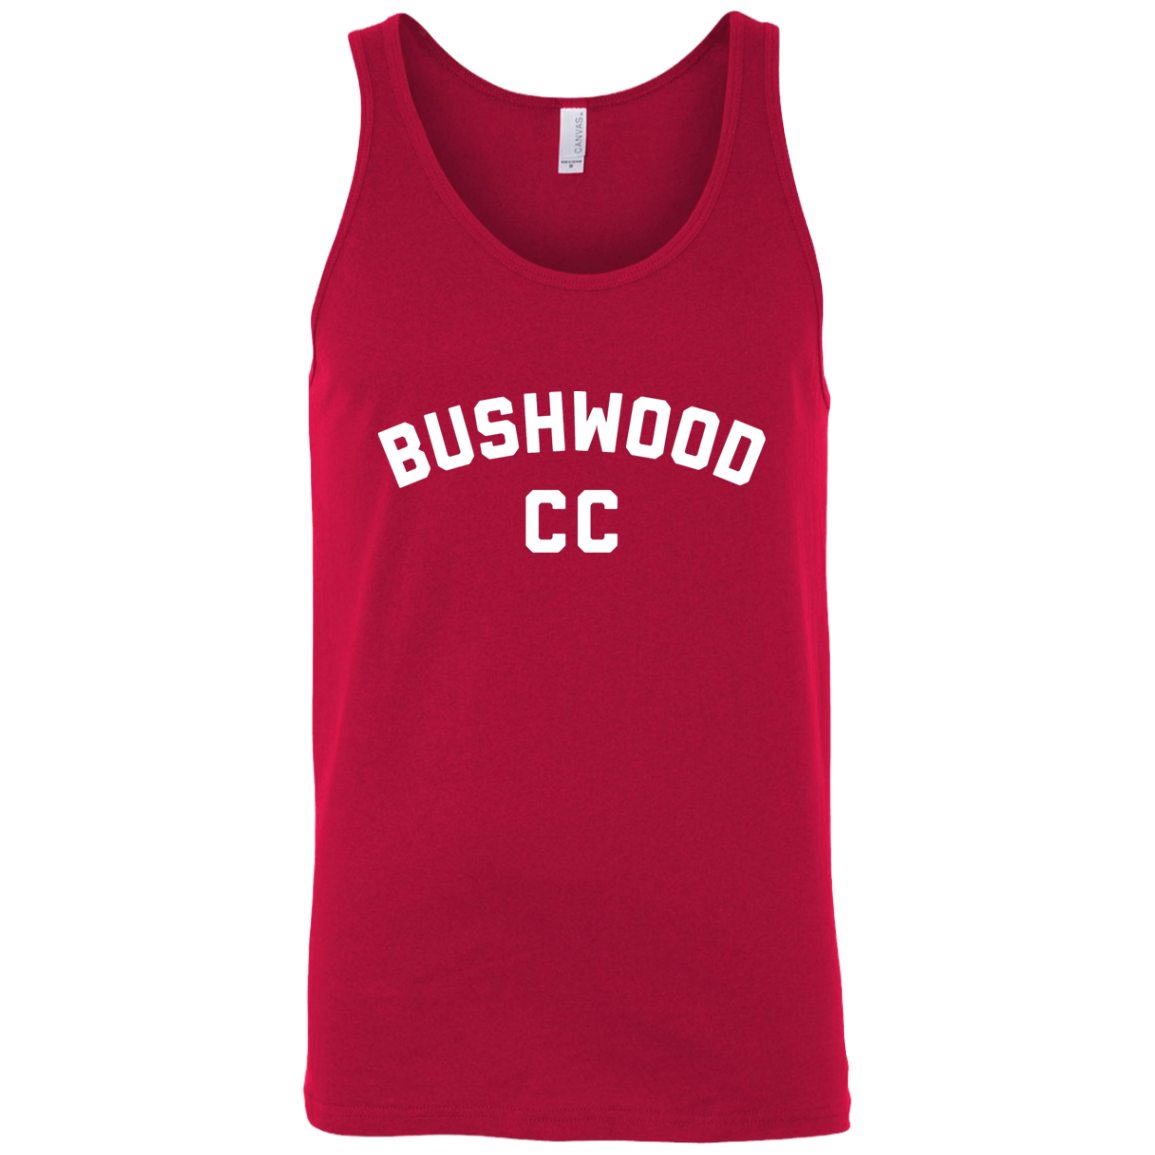 Bushwood Country Club Inspired Unisex Tank